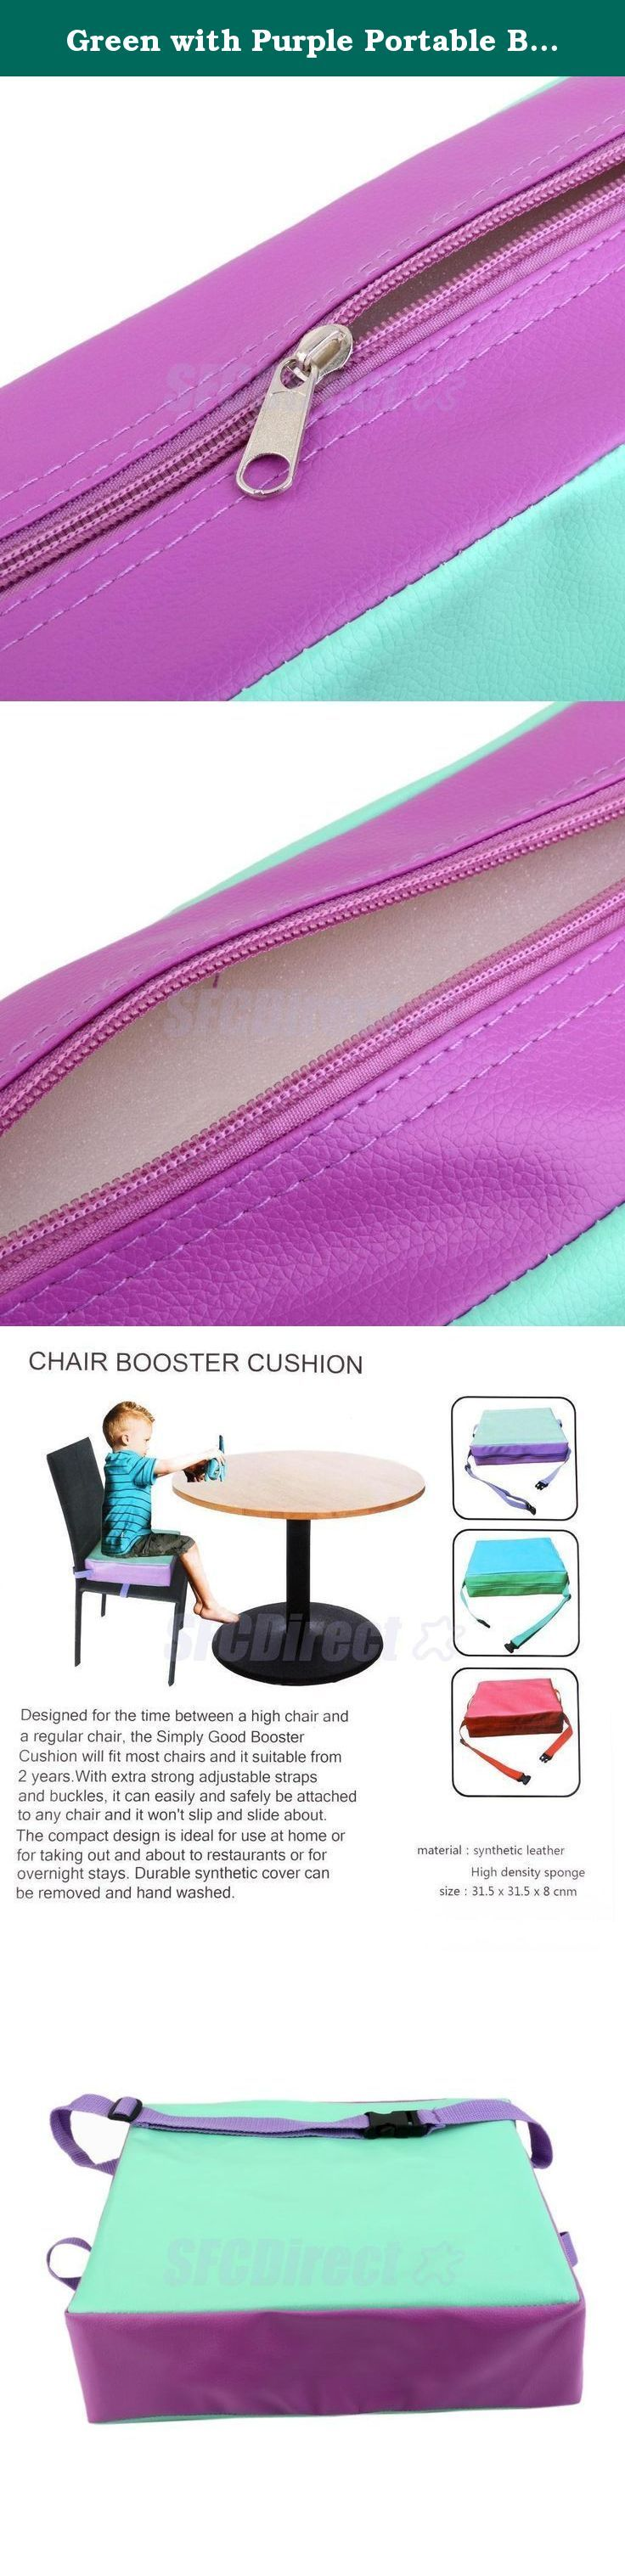 Green with Purple Portable Baby Kids Toddler Feeding High Chair Booster Seat Pad Dining Cushion. Life baby sitting in the chair to eat, because the body is not enough Gao, very convenient, even bought a special chair baby, but once their children grow up, they can not be used, and this time, we can help cushion this increase Gao to your baby, you can adjust the tightness to be split out sponge to clean and waterproof synthetic leather, food accidentally fell engage in dirty, as long as a…